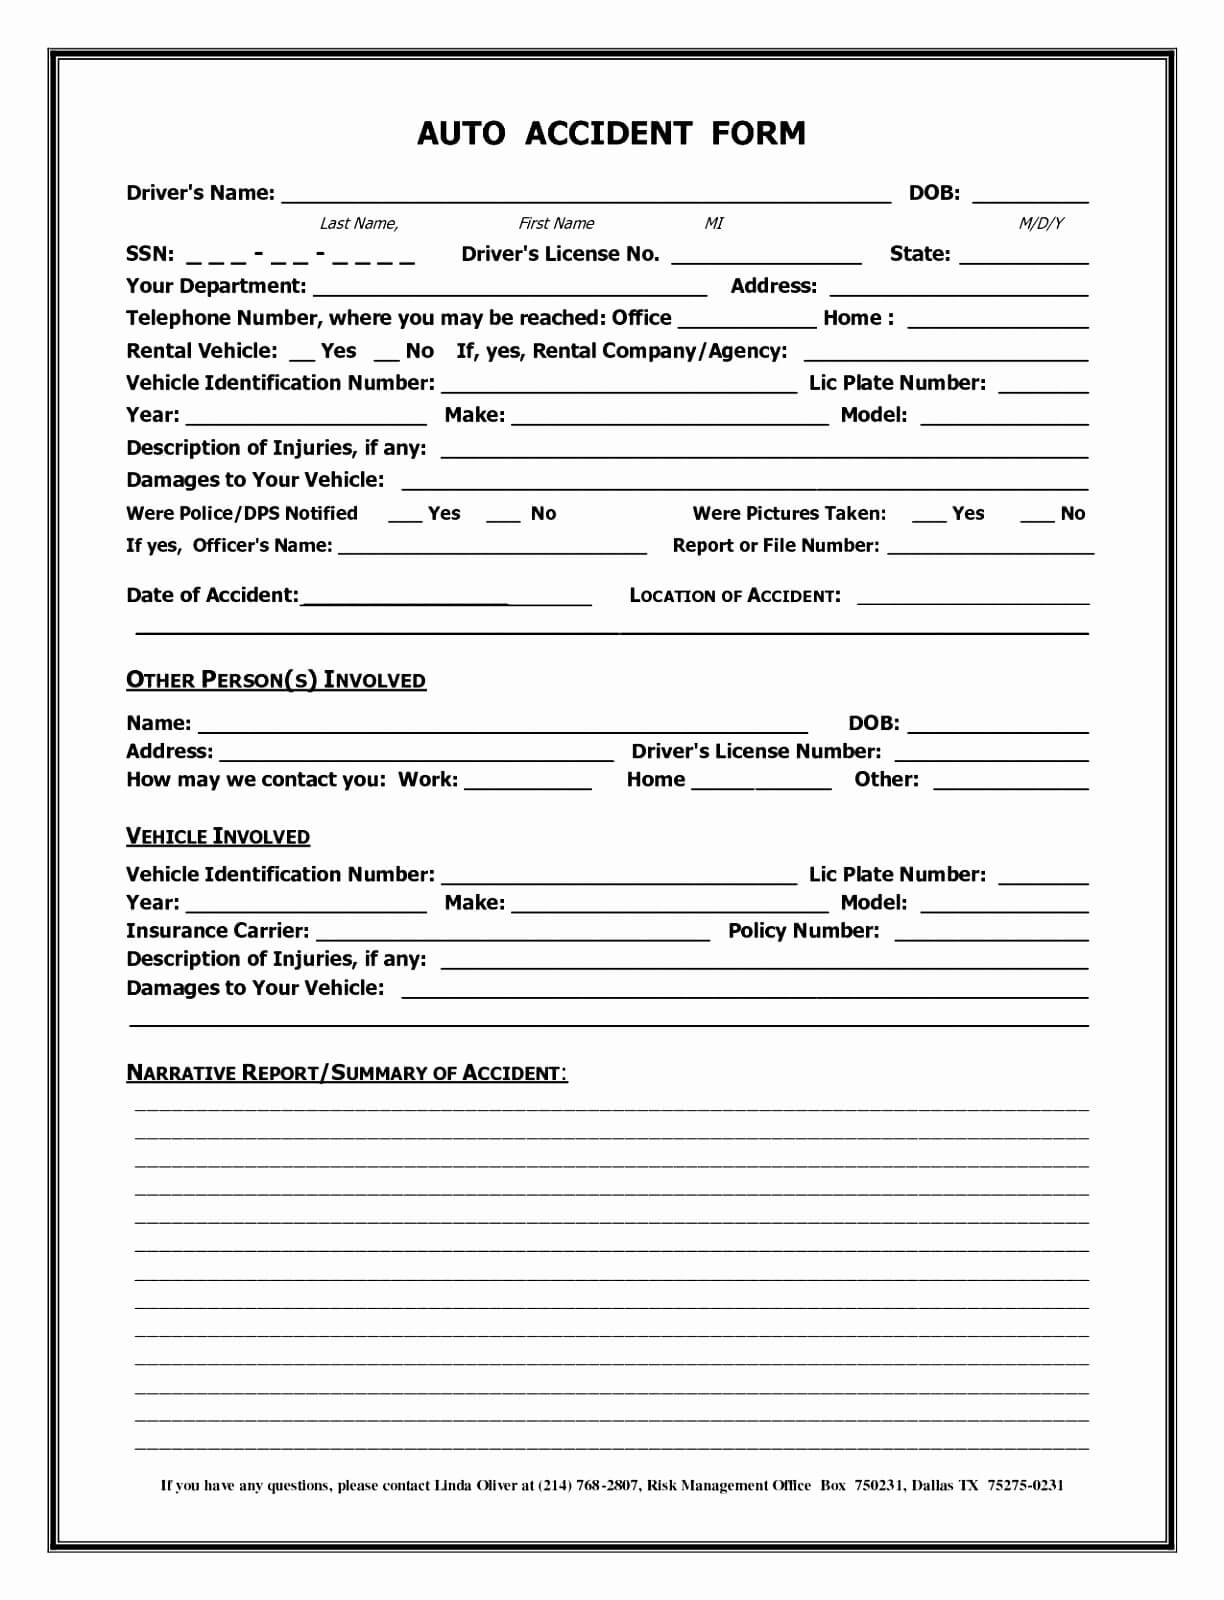 007 Template Ideas Accident Report Form Uk Of Motor Vehicle Pertaining To Motor Vehicle Accident Report Form Template